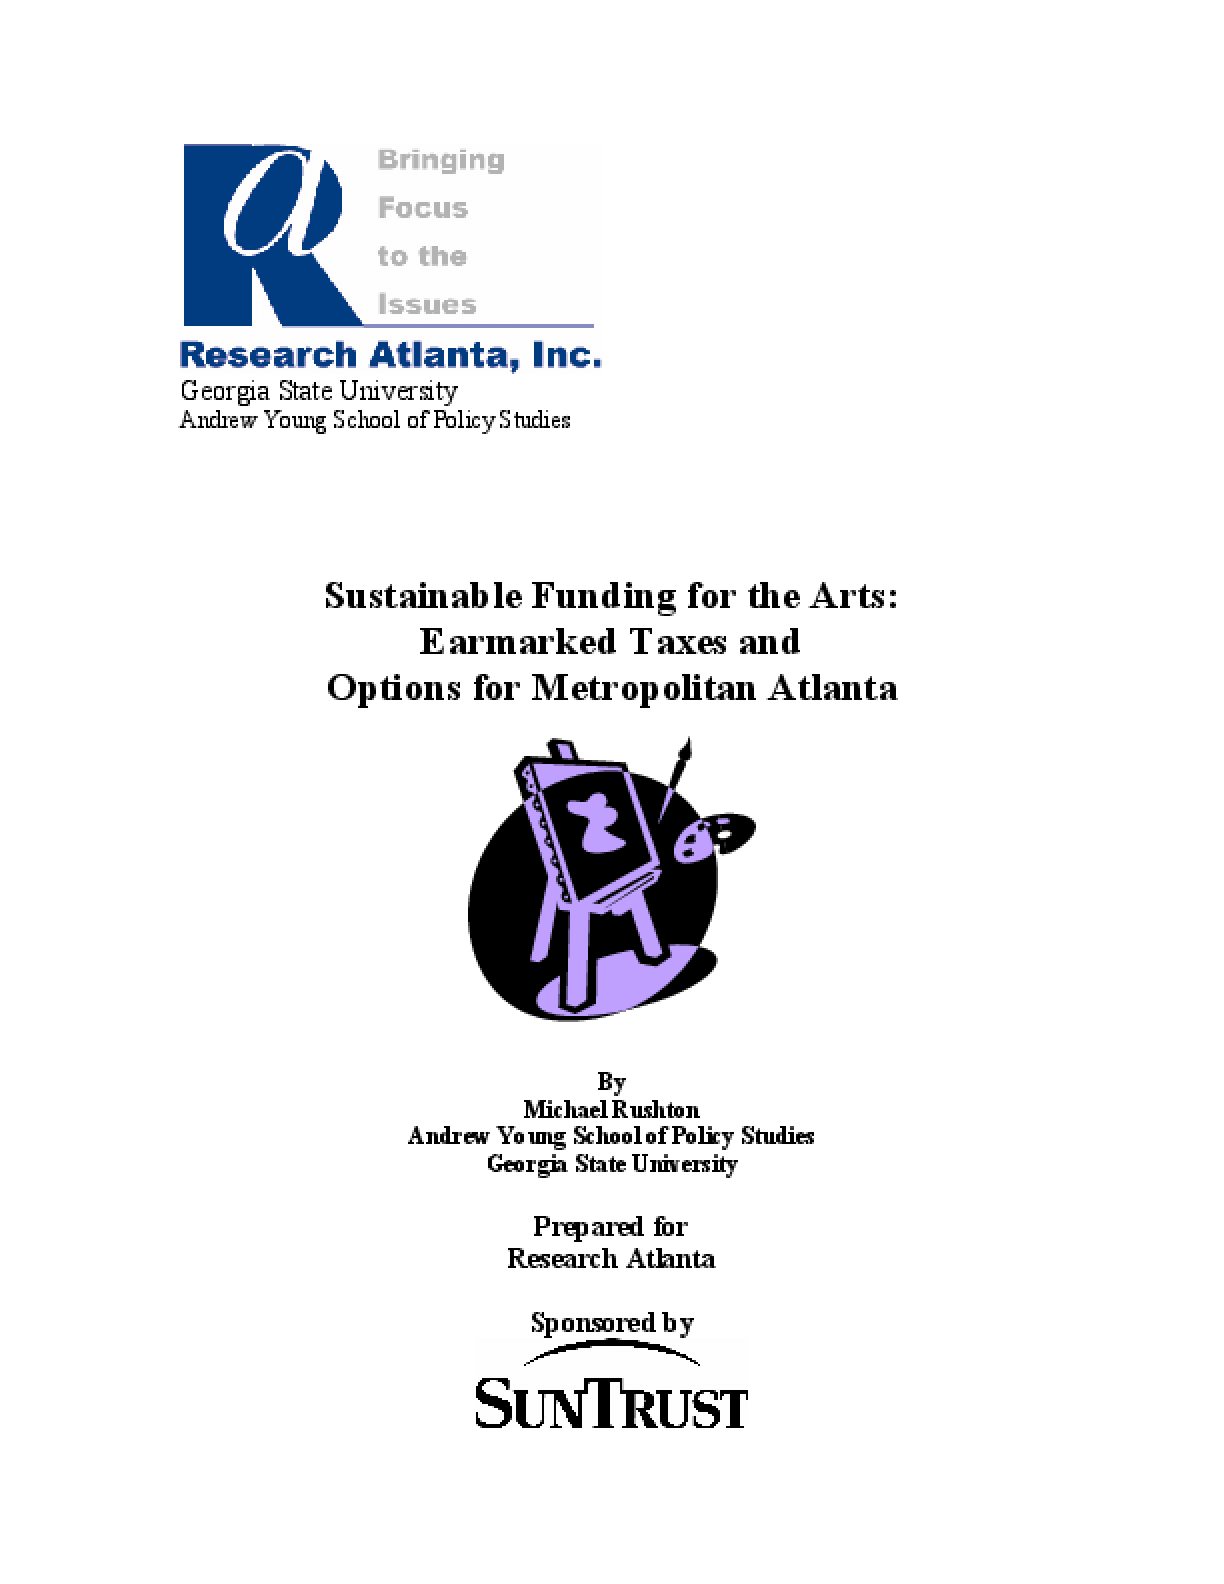 Sustainable Funding for the Arts: Earmarked Taxes and Options for Metropolitan Atlanta